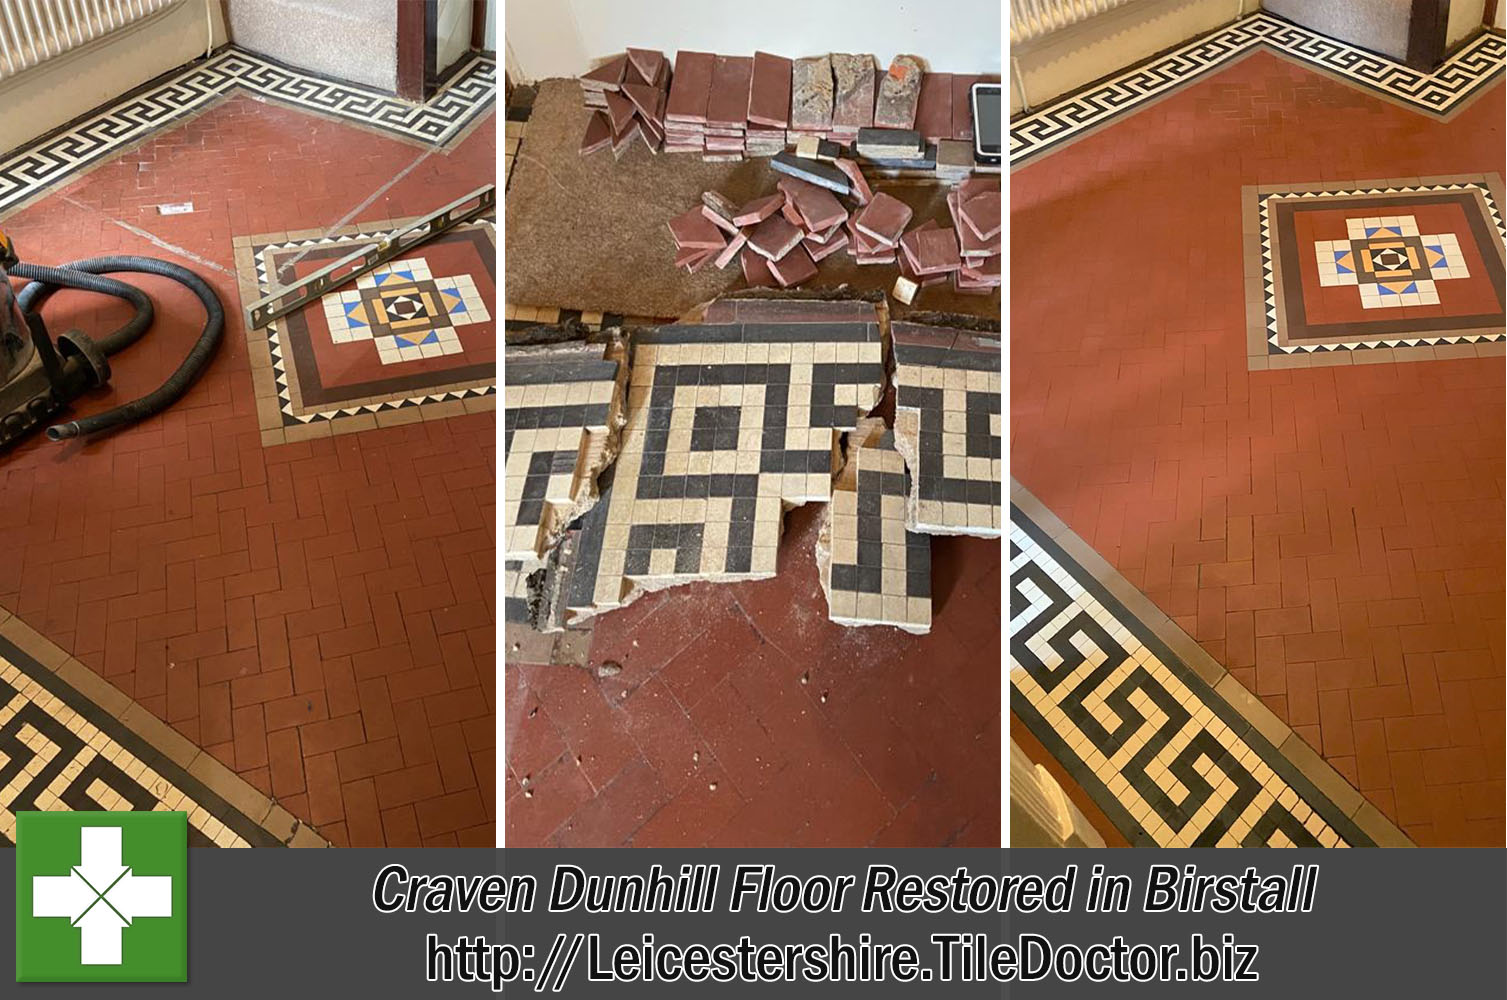 Edwardian Geometric Craven Dunhill Tile Restoration in Birstall